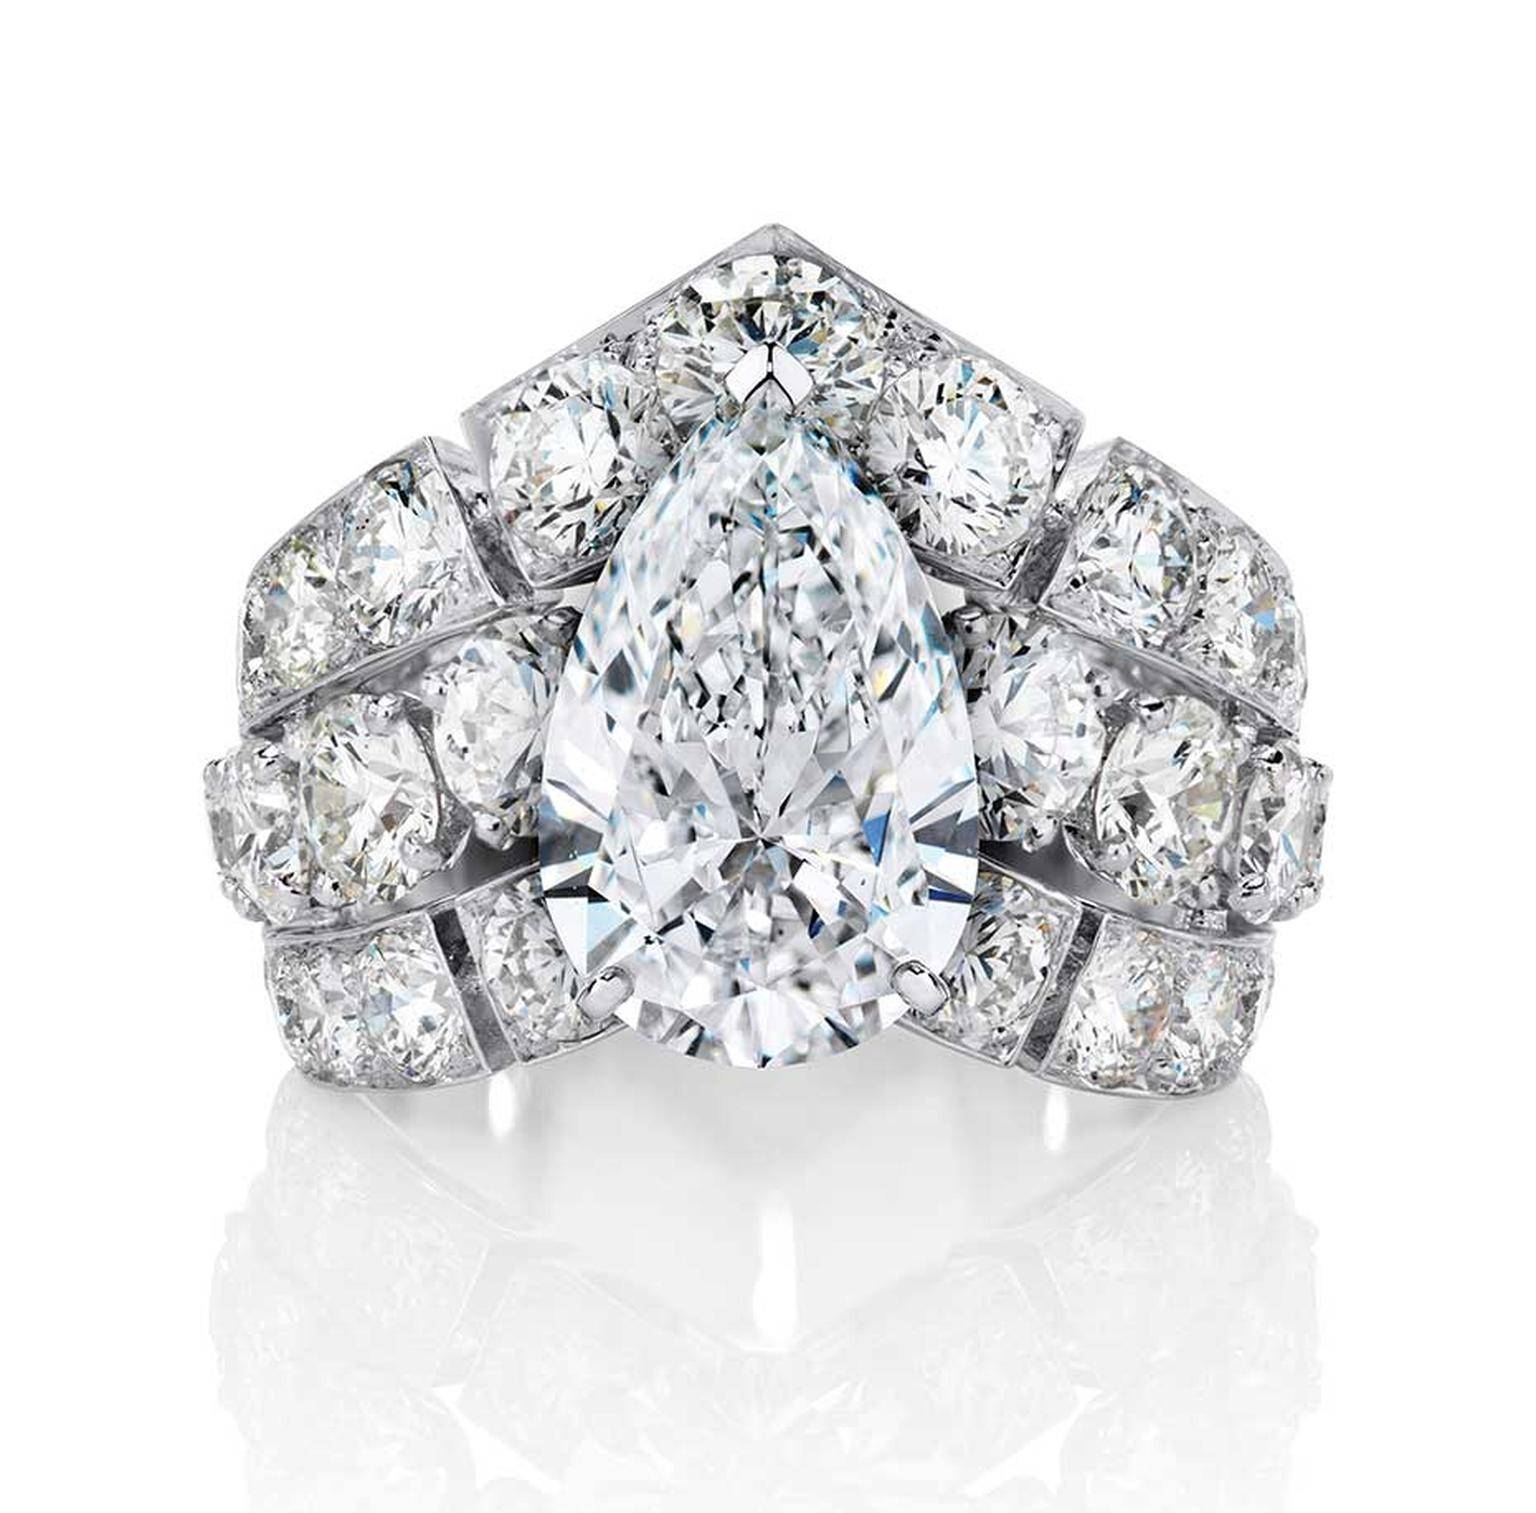 Big Engagement Rings: The Sky's The Limit With These Incredible Inside Big Diamond Engagement Rings (View 7 of 15)